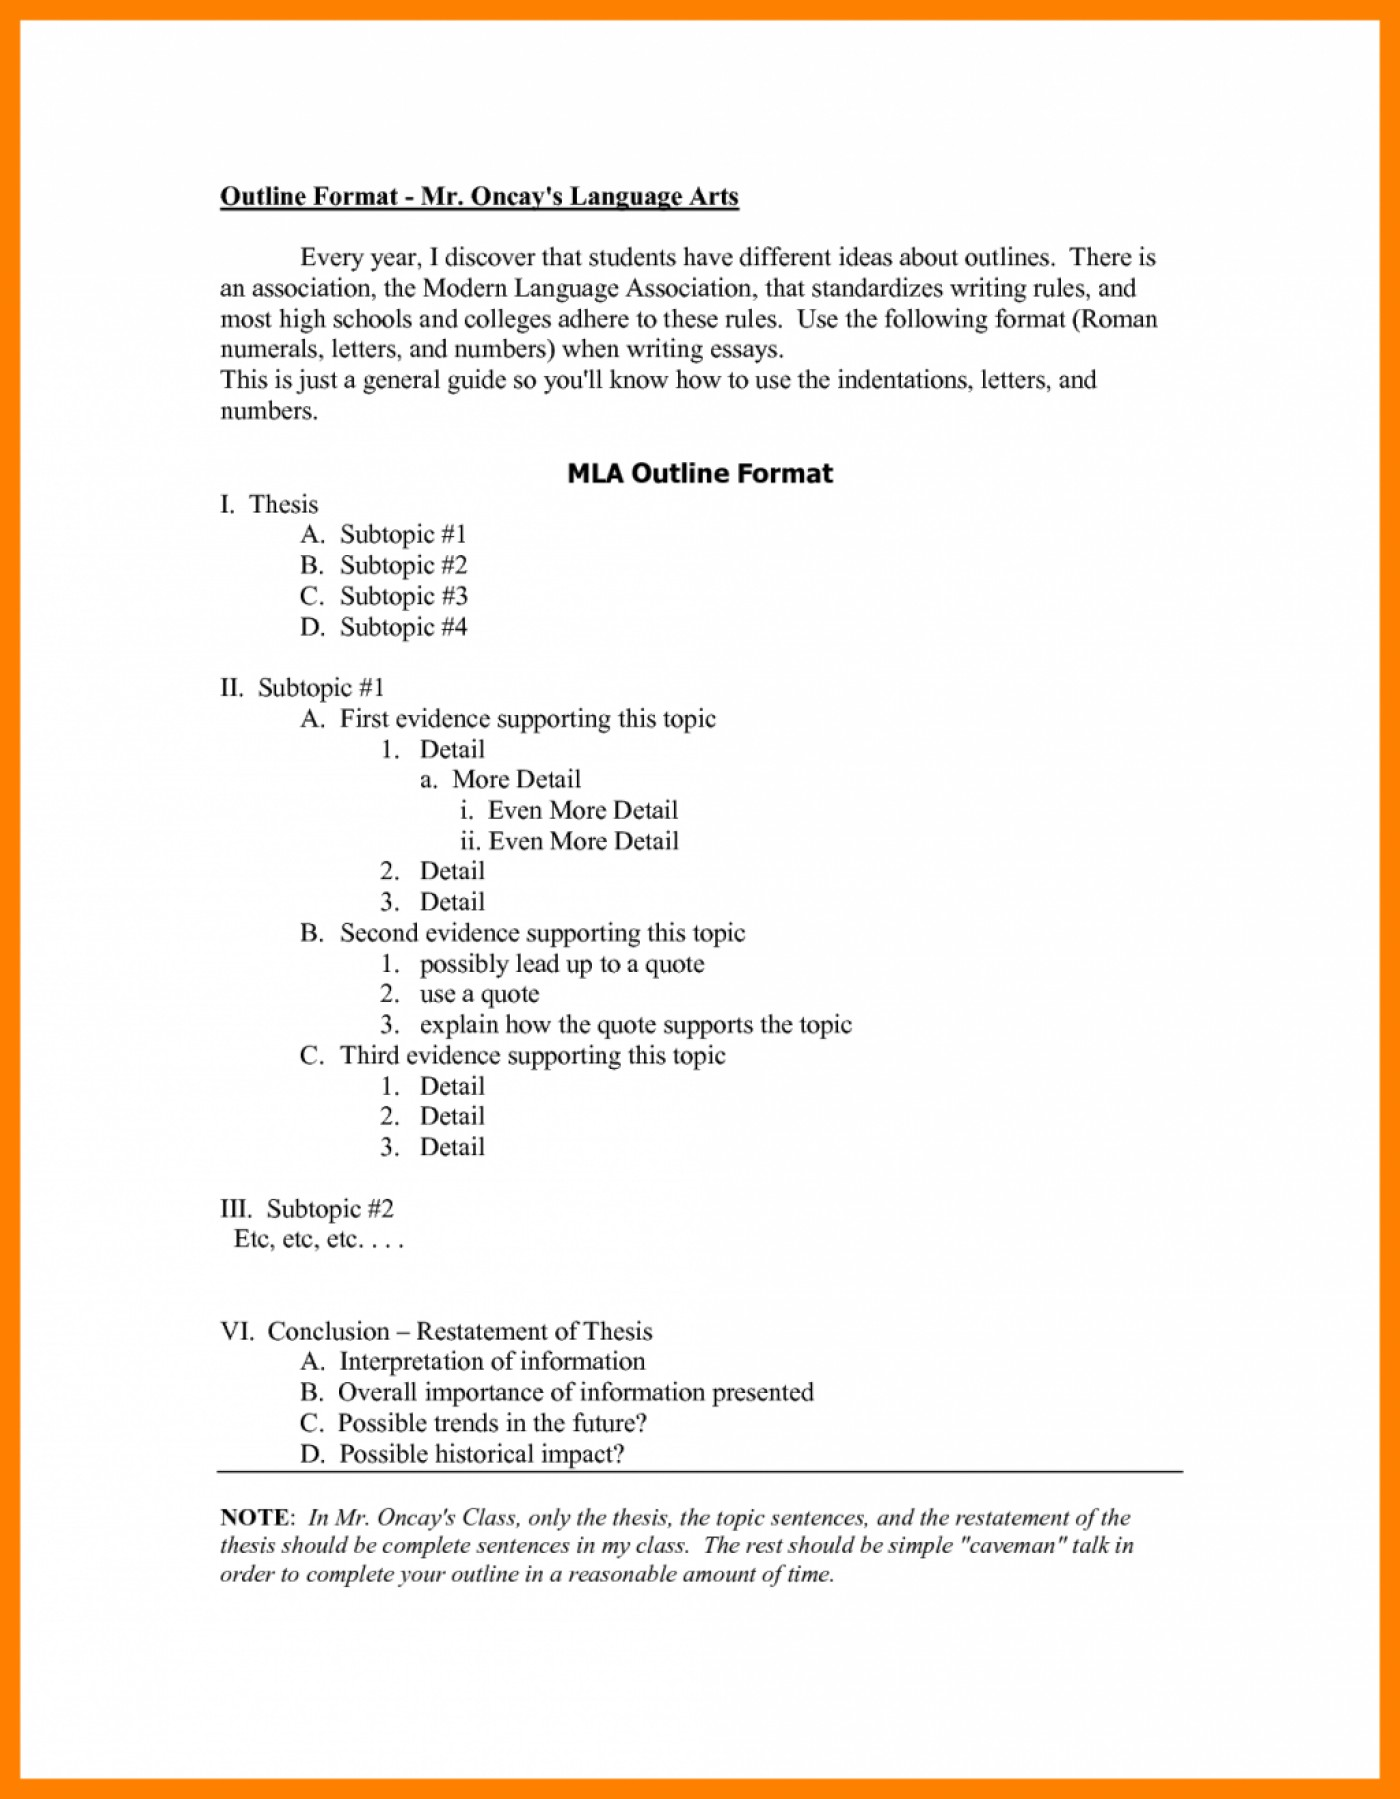 023 Research Paper 20research Samples Mla Citation Generator Outline Daly Note Card Template Internal Citations Blank20 1024x1316 Style Sample Stupendous Papers Example Format Works Cited College Writing 1400